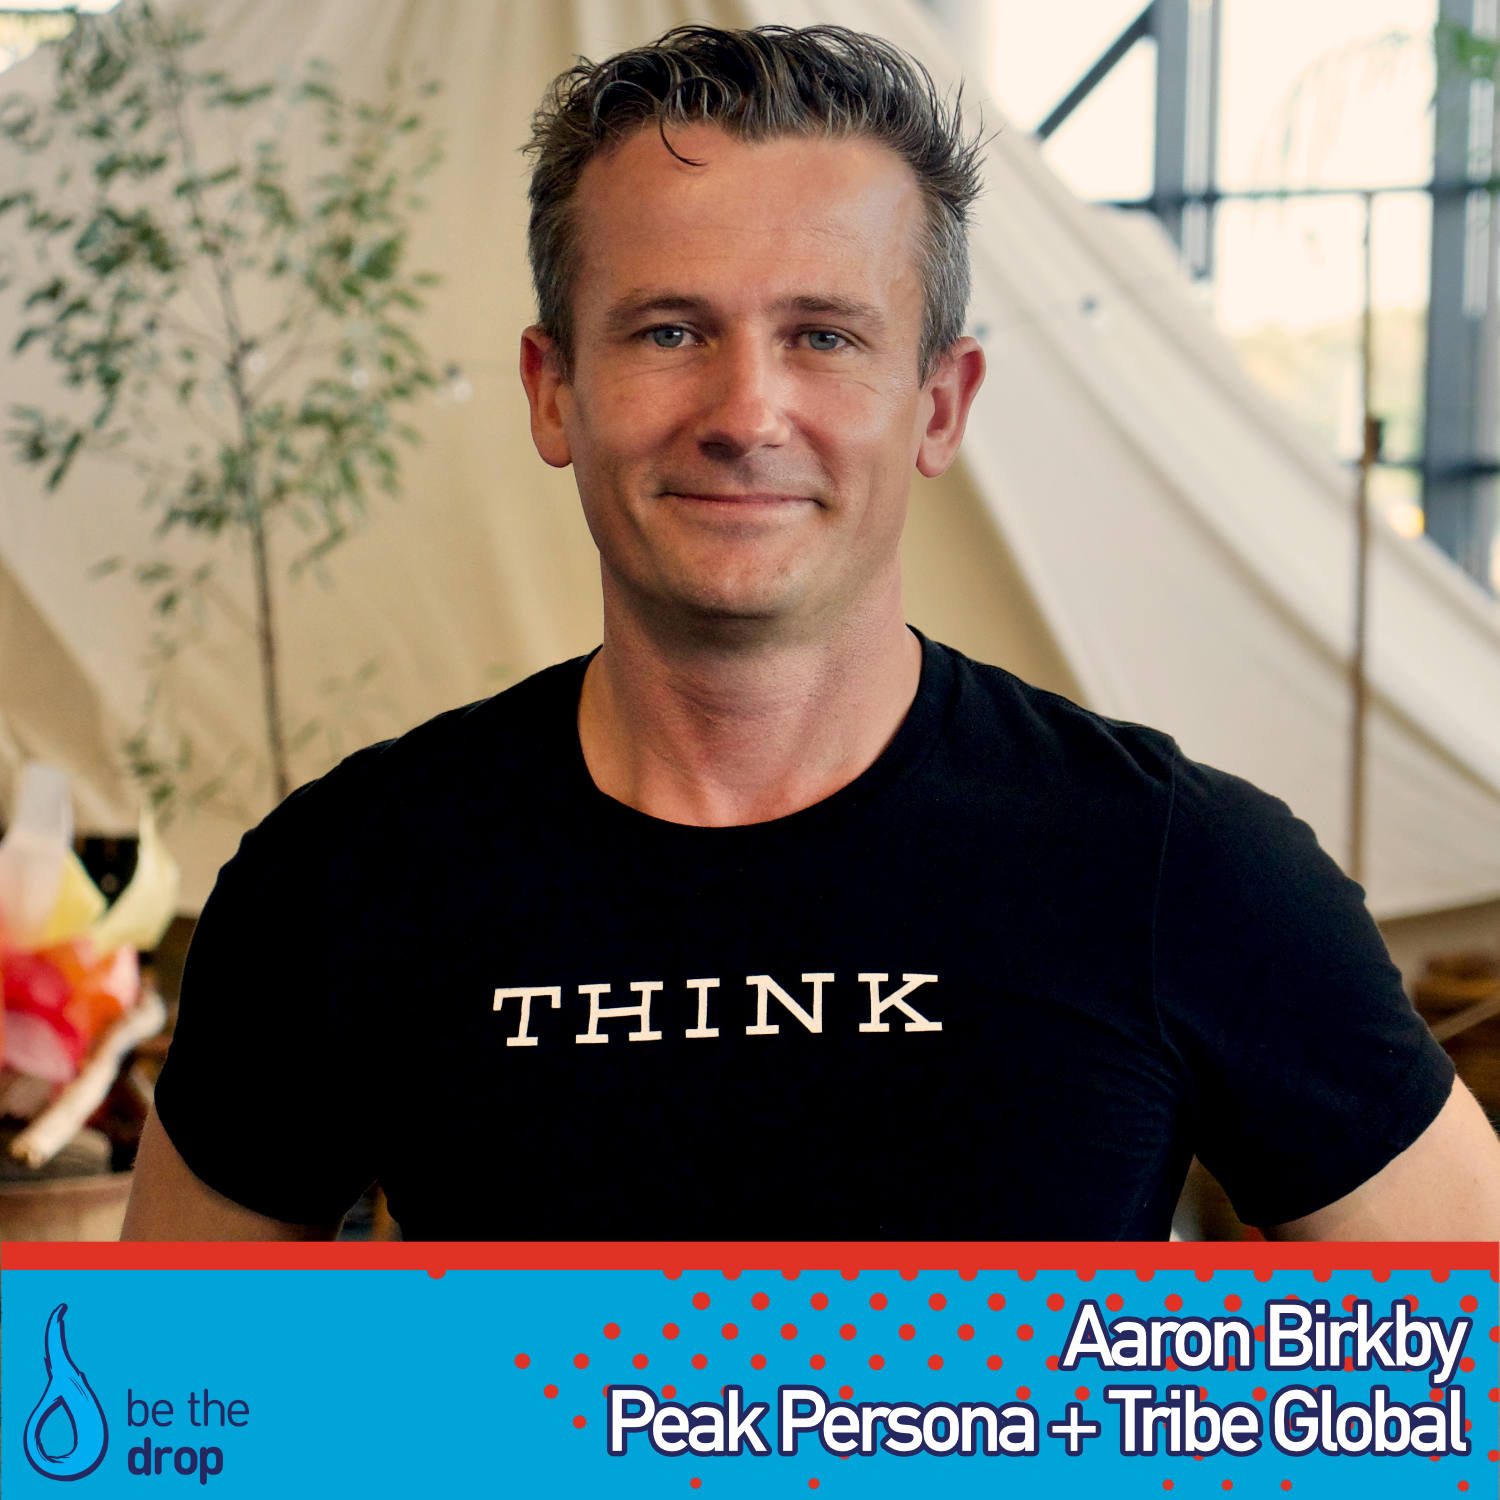 How To Achieve Peak Performance With Aaron Birkby [Podcast]